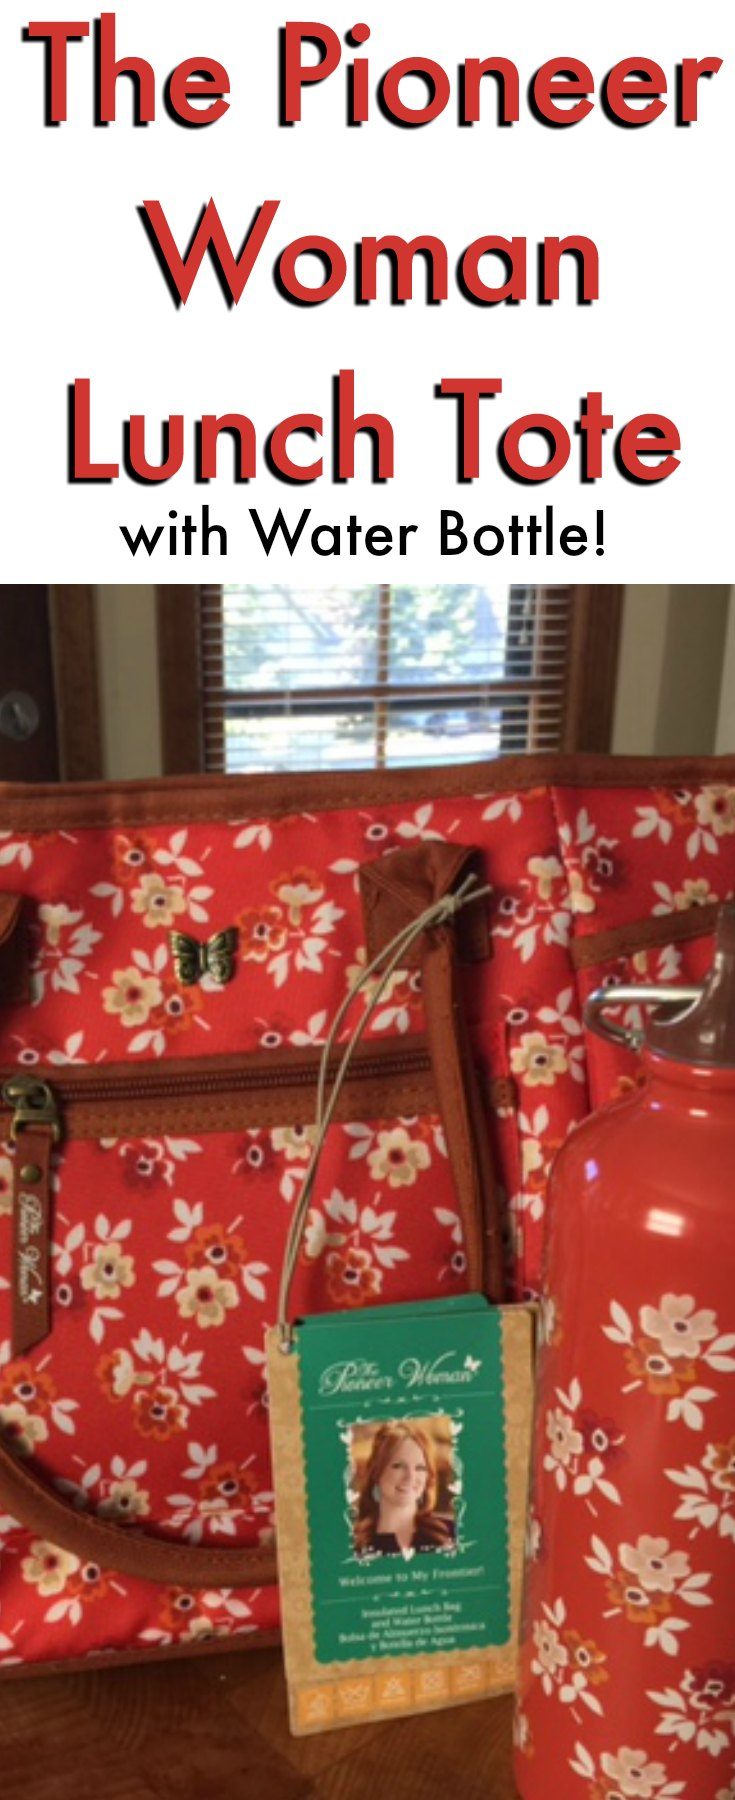 The Pioneer Woman Lunch Tote